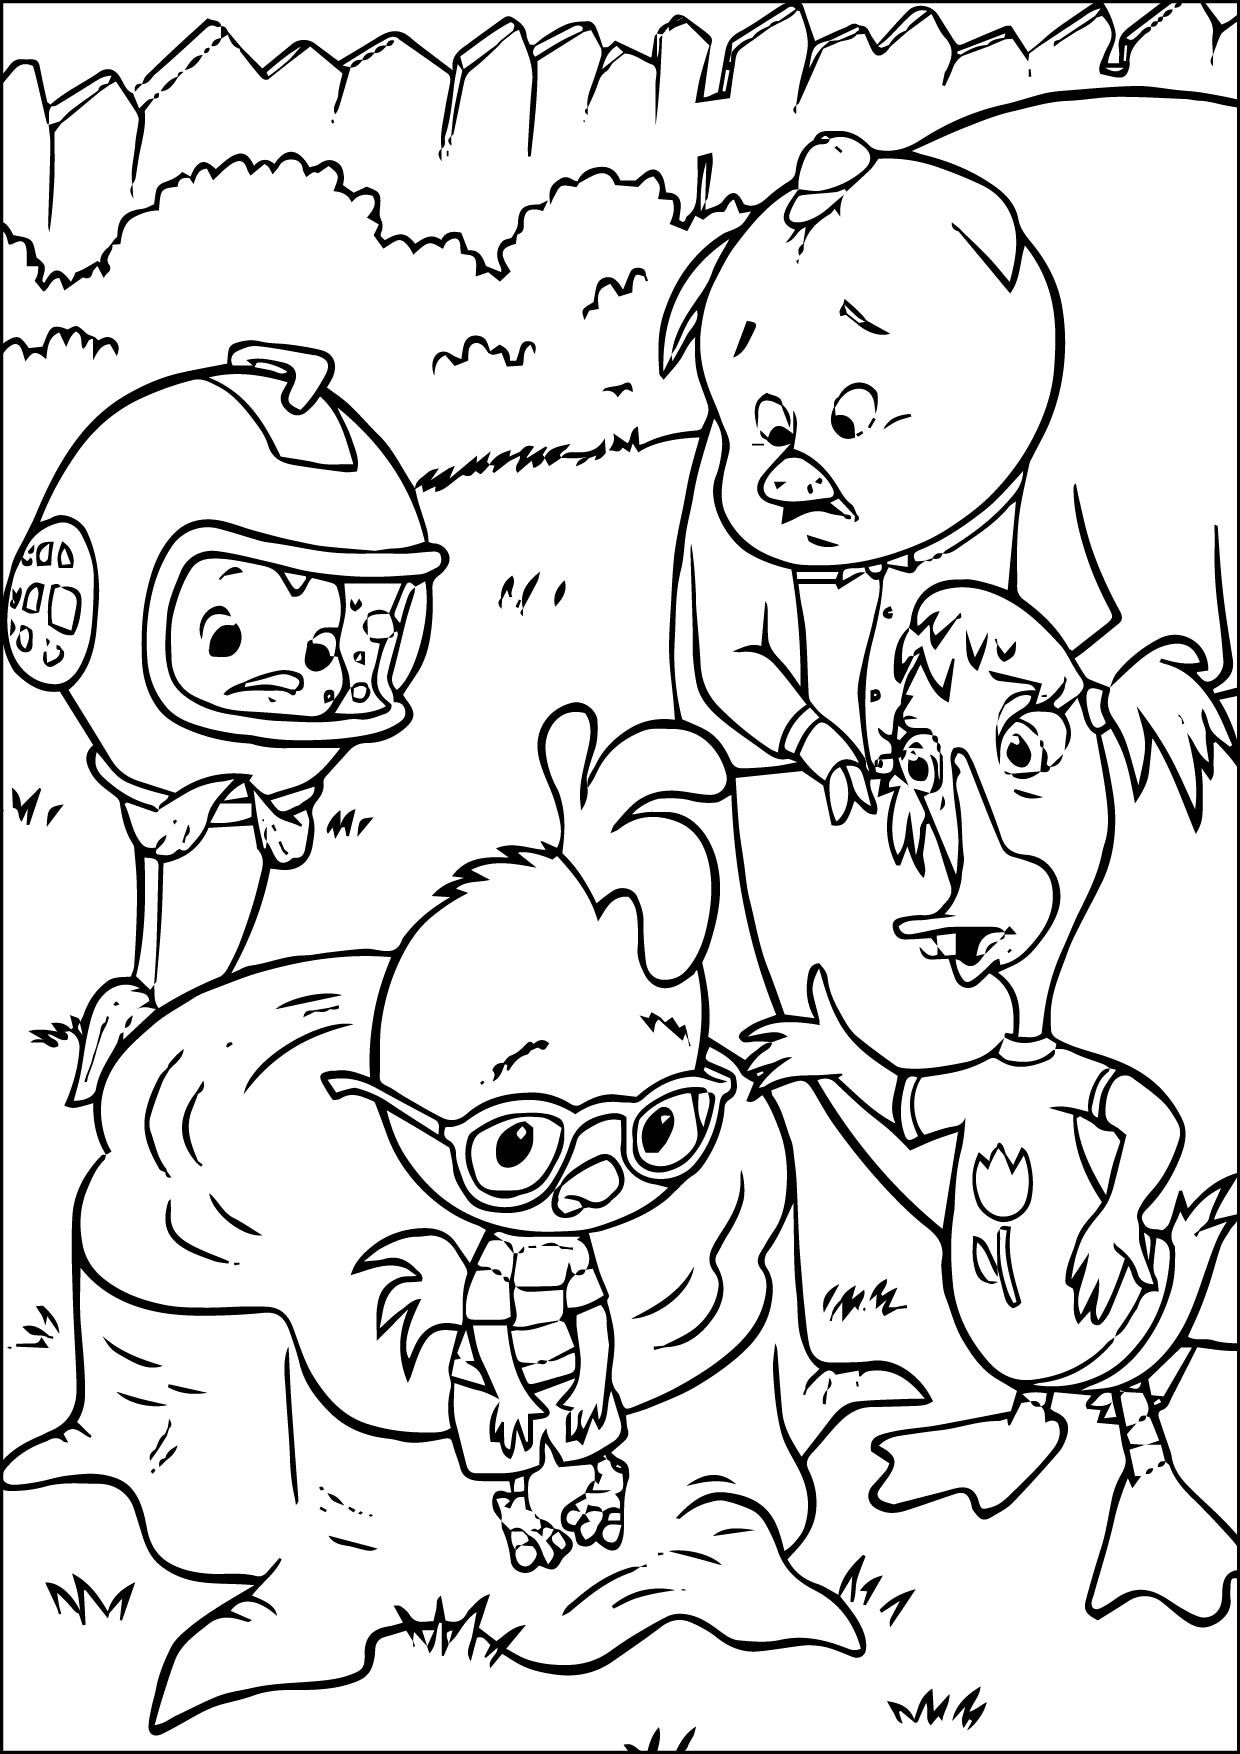 Cool Coloring Page 11 10 2015 034854 01 Check More At Http Www Mcoloring Com Index Php 2015 10 26 Coloring Pages Disney Coloring Pages Cartoon Coloring Pages [ 1754 x 1240 Pixel ]